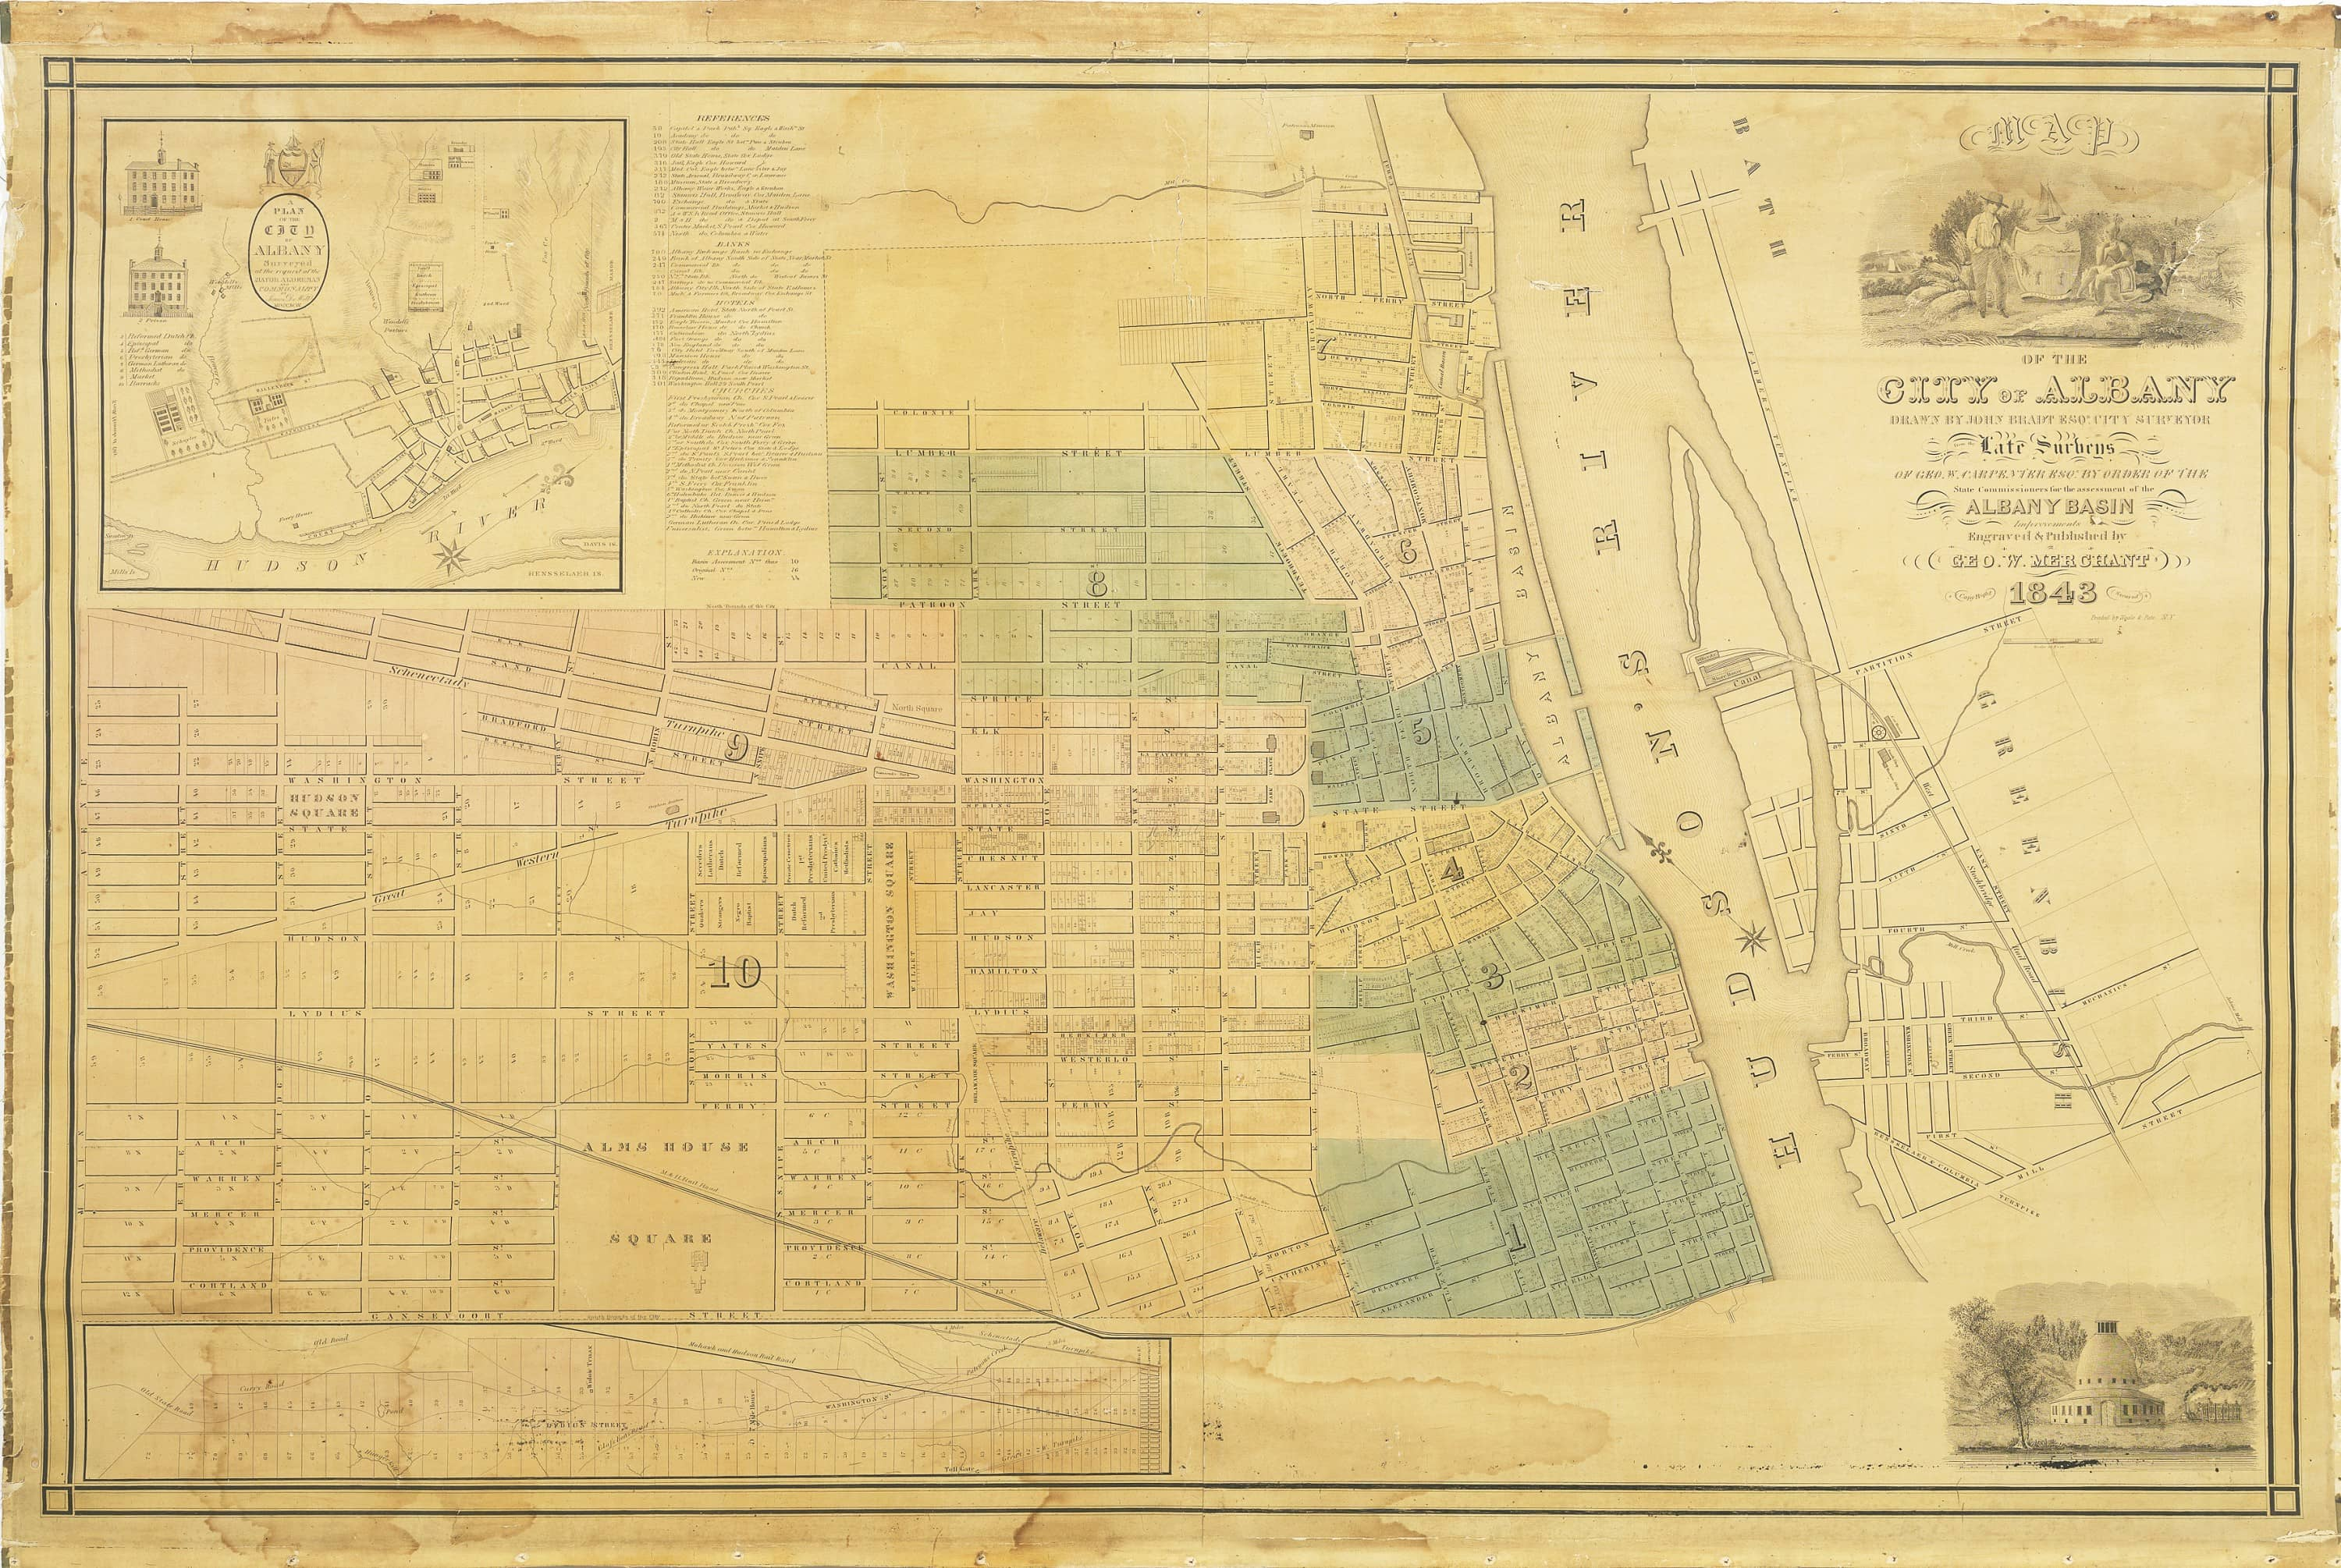 An early wall map of Albany, New York - Rare & Antique Maps on map of crabtree, map of foxborough, map of hubbard, map of marylhurst university, map of south west western australia, map of glen echo, map of oregon, map of crandall, map of girard, map of spencerport, map of browns island, map of buffalo, map of brookings, map of new york state, map of crane, map of otto, map of dormansville, map of woodbourne, map of new york city, map of georgia,